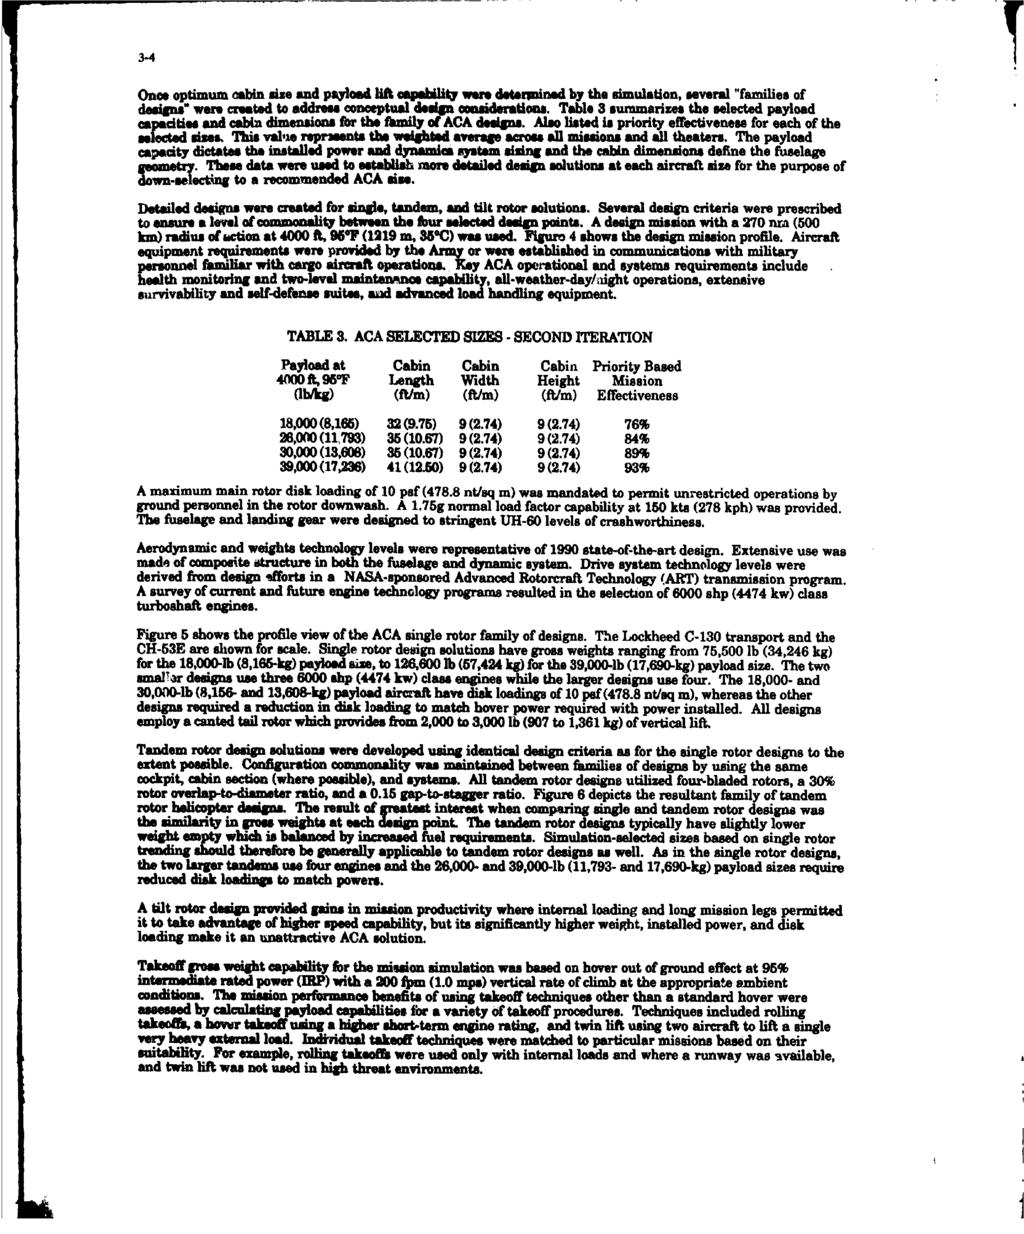 Progress In Military Airlift Pdf Light Laser Led Gt Circuits Running Message Board Cd4017 3 4 Once Optimum Cabin Uaso And Payload Lift Capability Were Determined By The Simulation